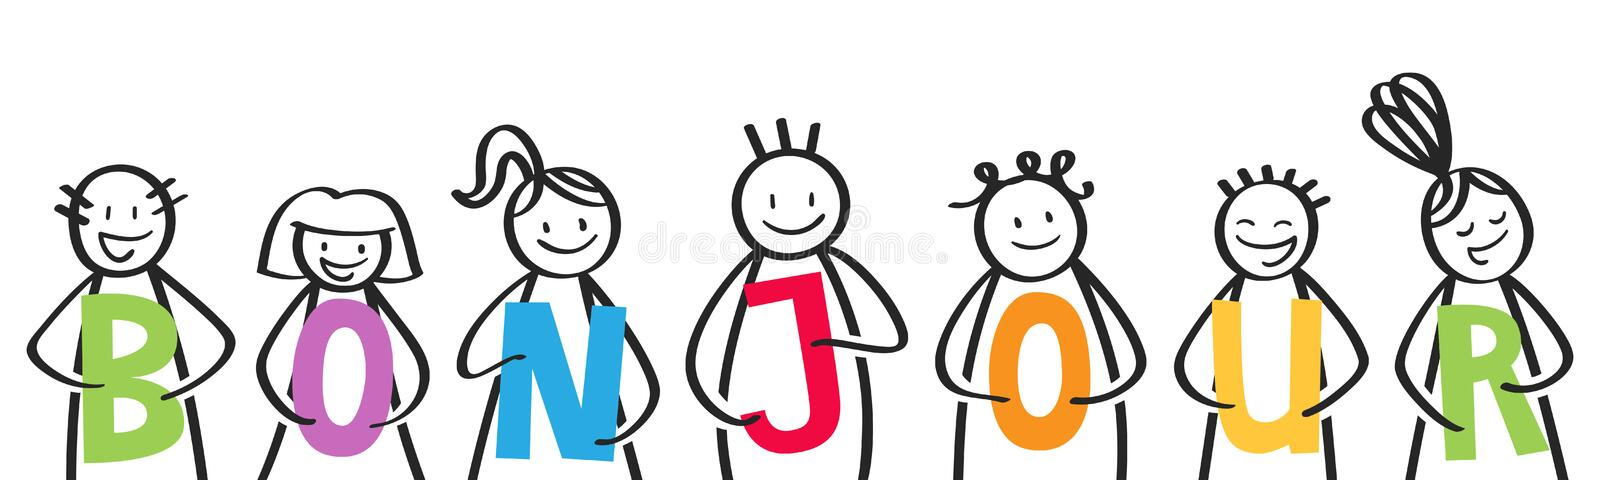 BONJOUR, smiling group of stick figures holding colorful letters, welcome address, french kids saying hello. Isolated on white background vector illustration